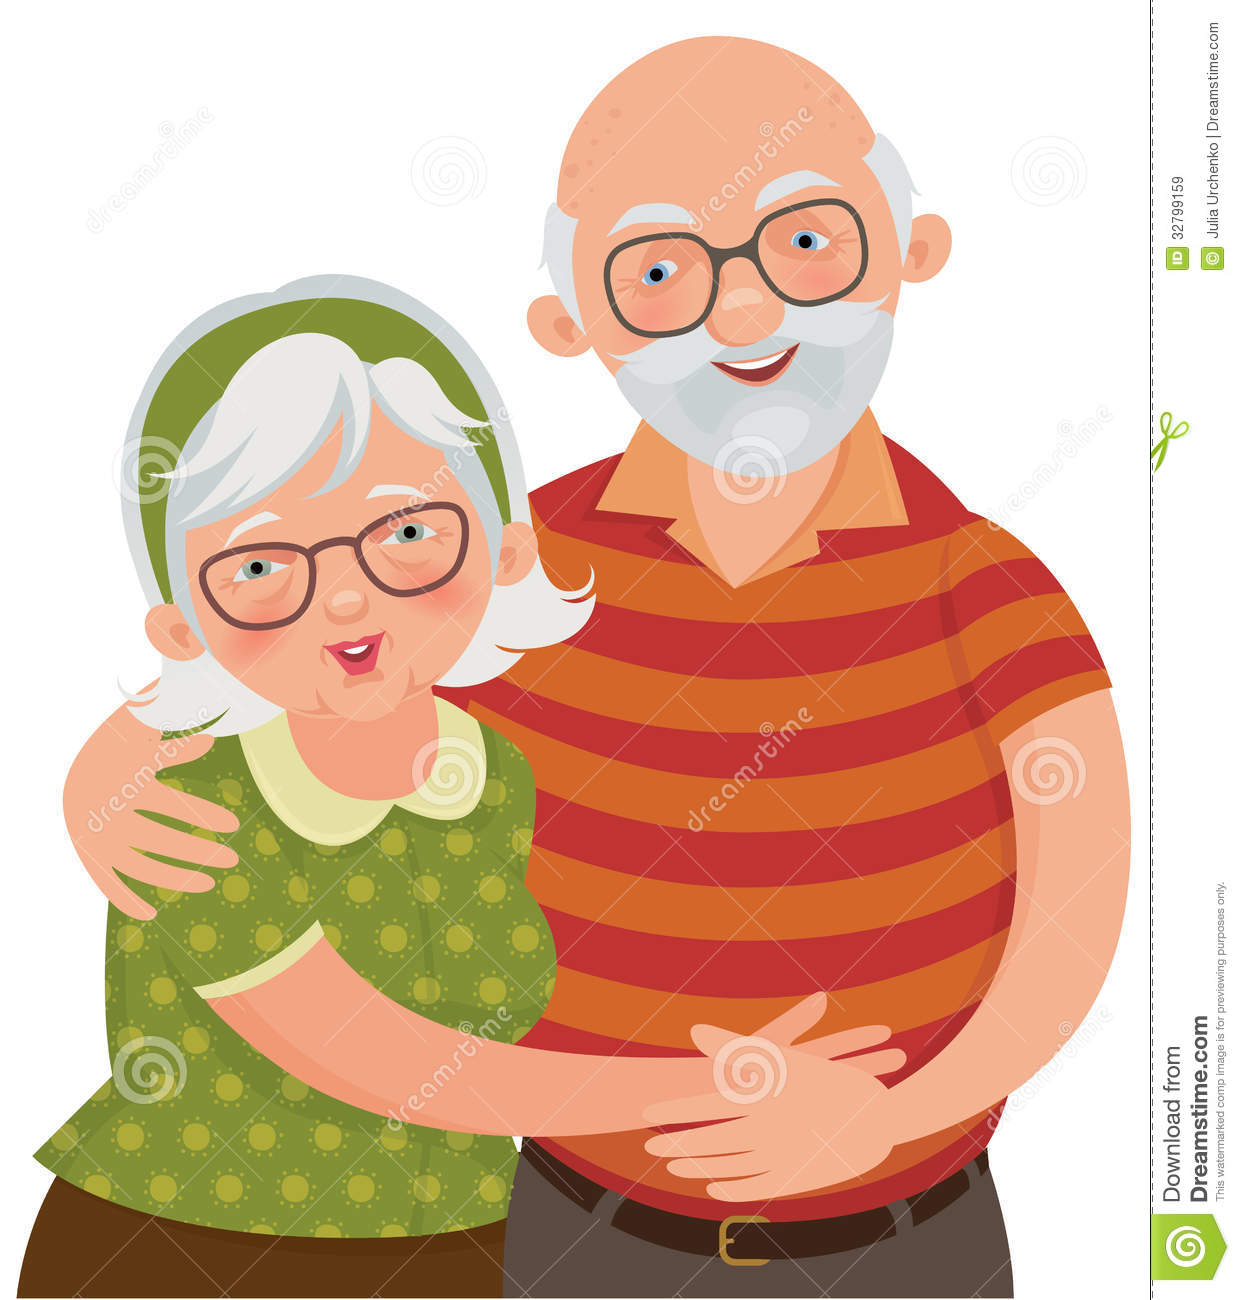 Cute Indian Married Couple Wallpaper Happy Old Couple Stock Vector Illustration Of Aging